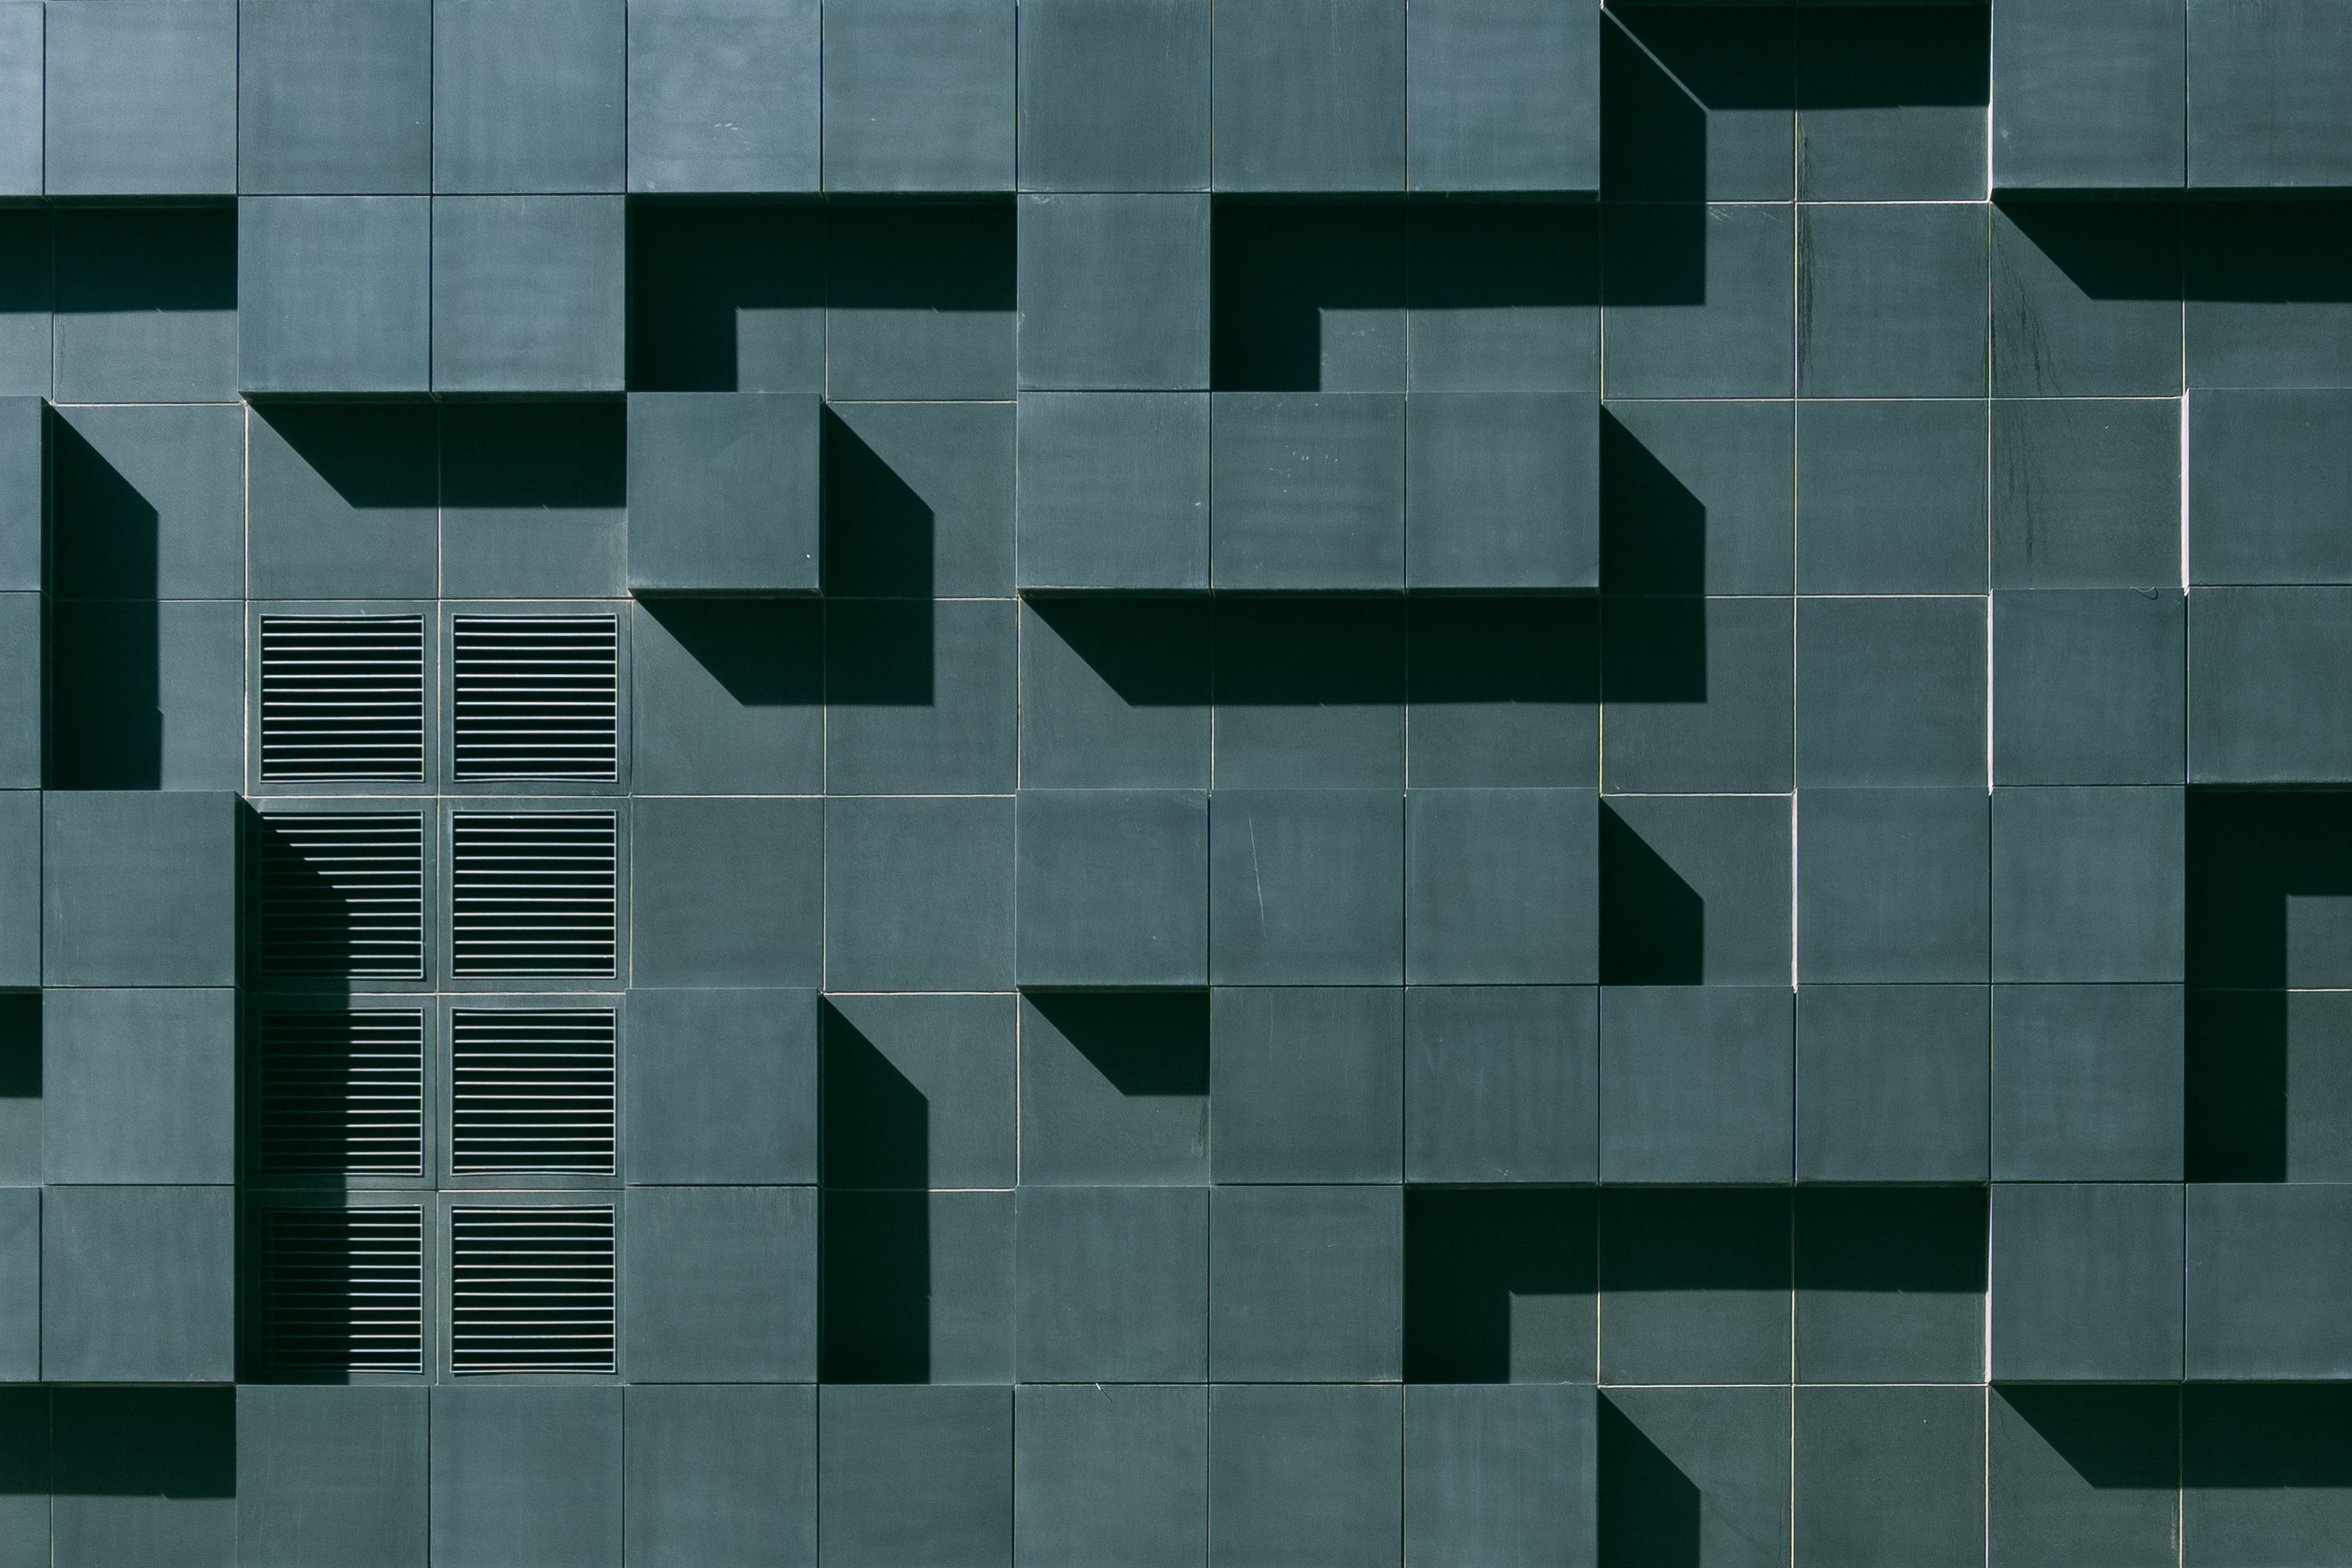 Modular, abstract architecture.